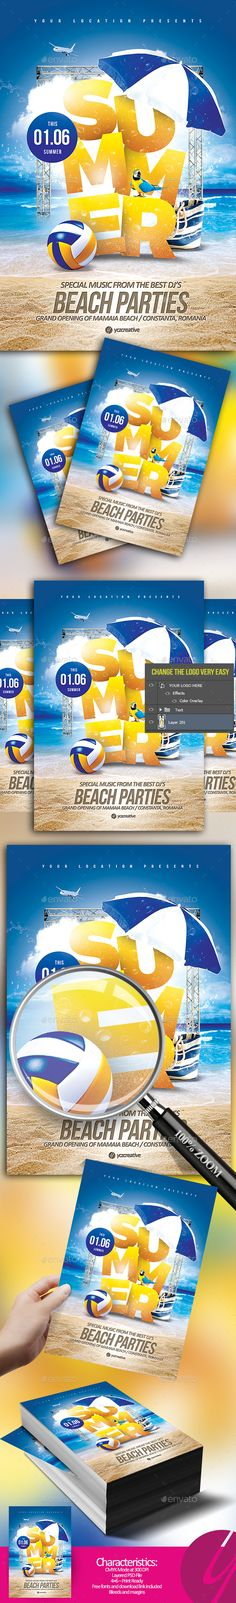 Summer Beach Parties Flyer by YczCreative Pool Parties Season The best party in town for your next event. Special designed for your ocasionCharacteristics: Summer Beach Party, Summer Parties, Pool Parties, Ocean Party, Summer Events, Templates Printable Free, Flyer Template, Creative Flyers, Creative Design